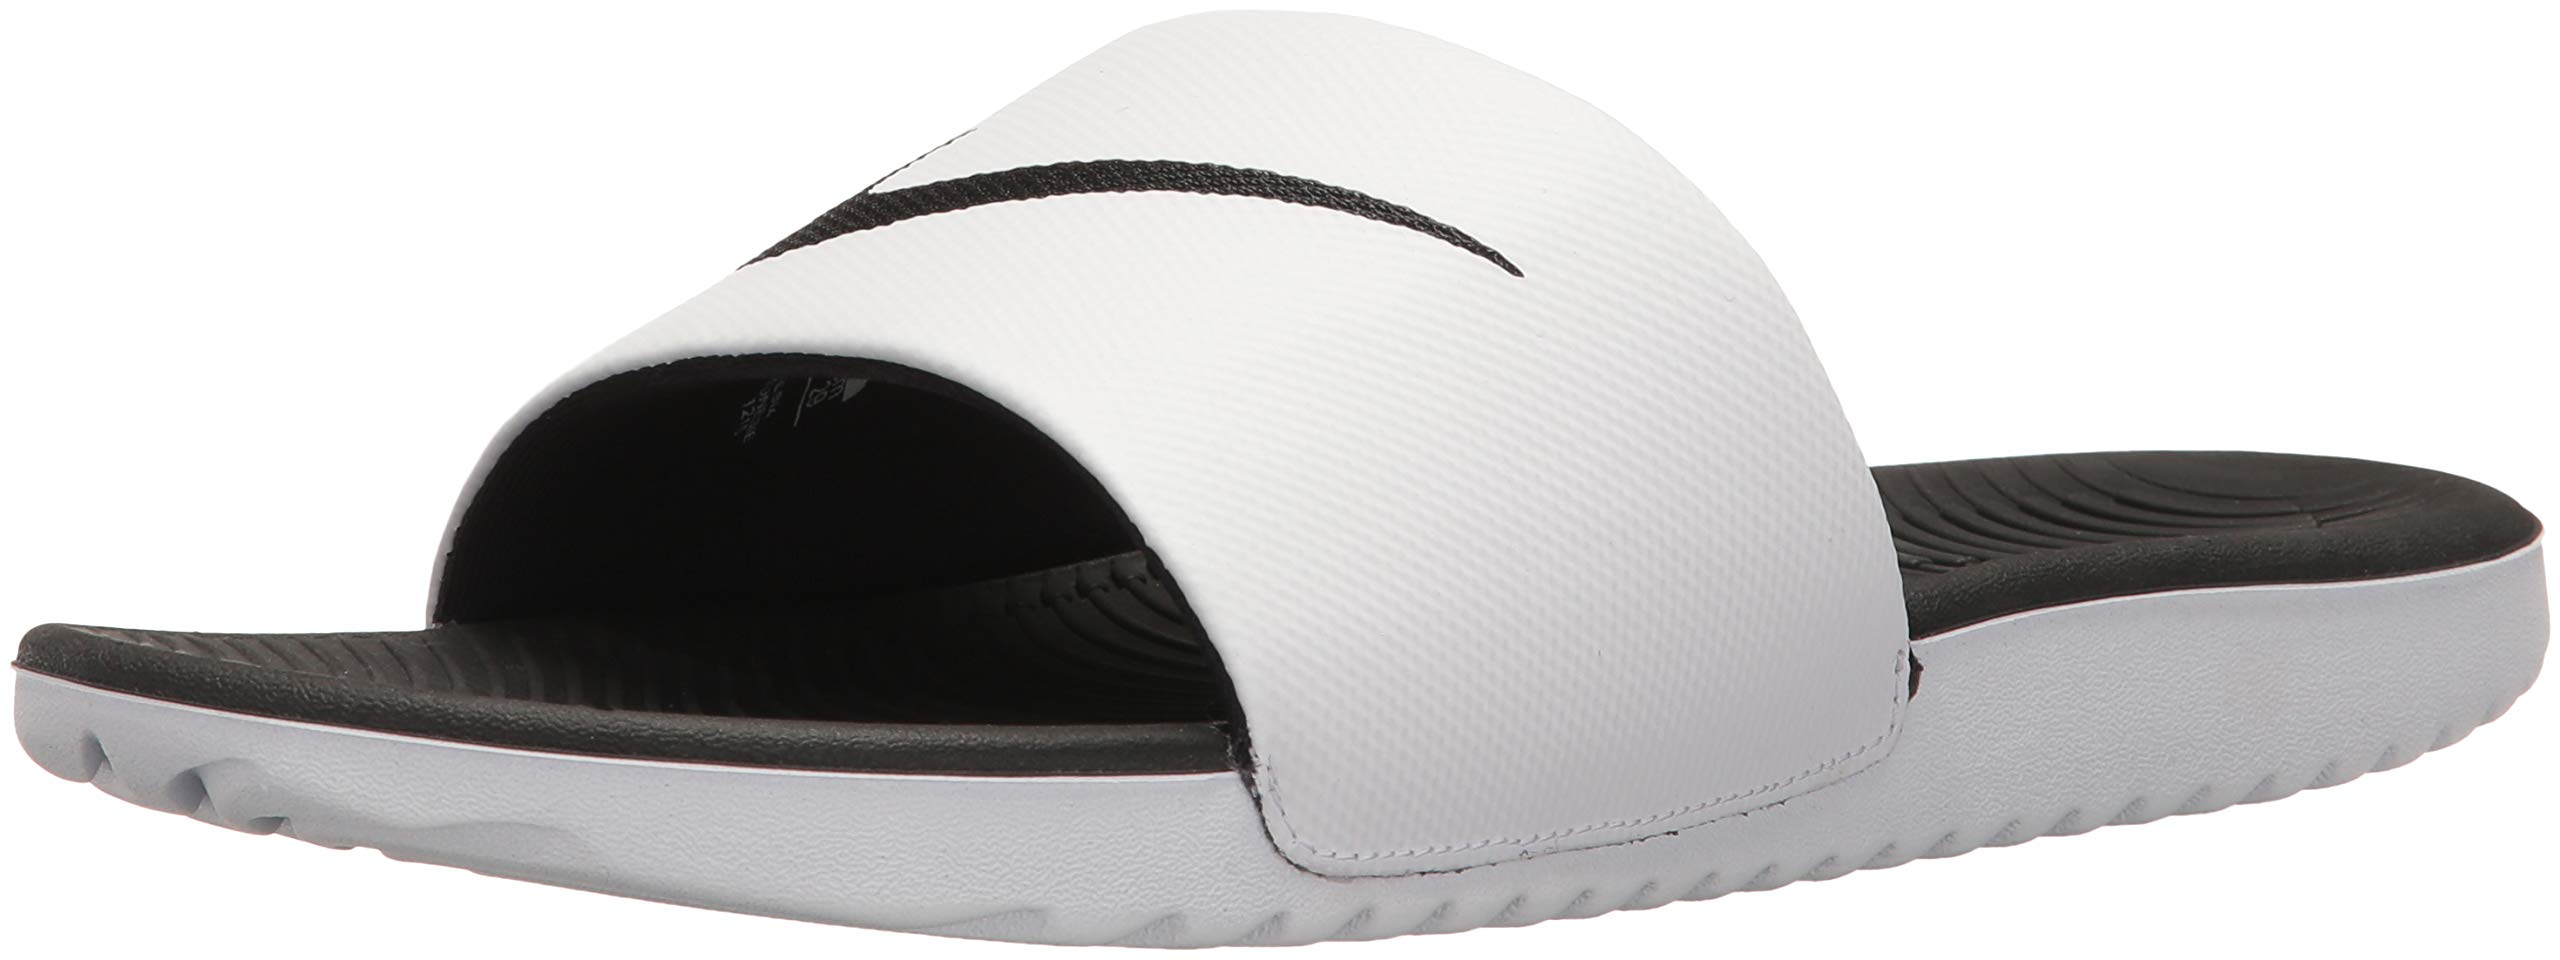 Nike Men's Kawa Slide Sandal, White/Black, 7 Regular US by Nike